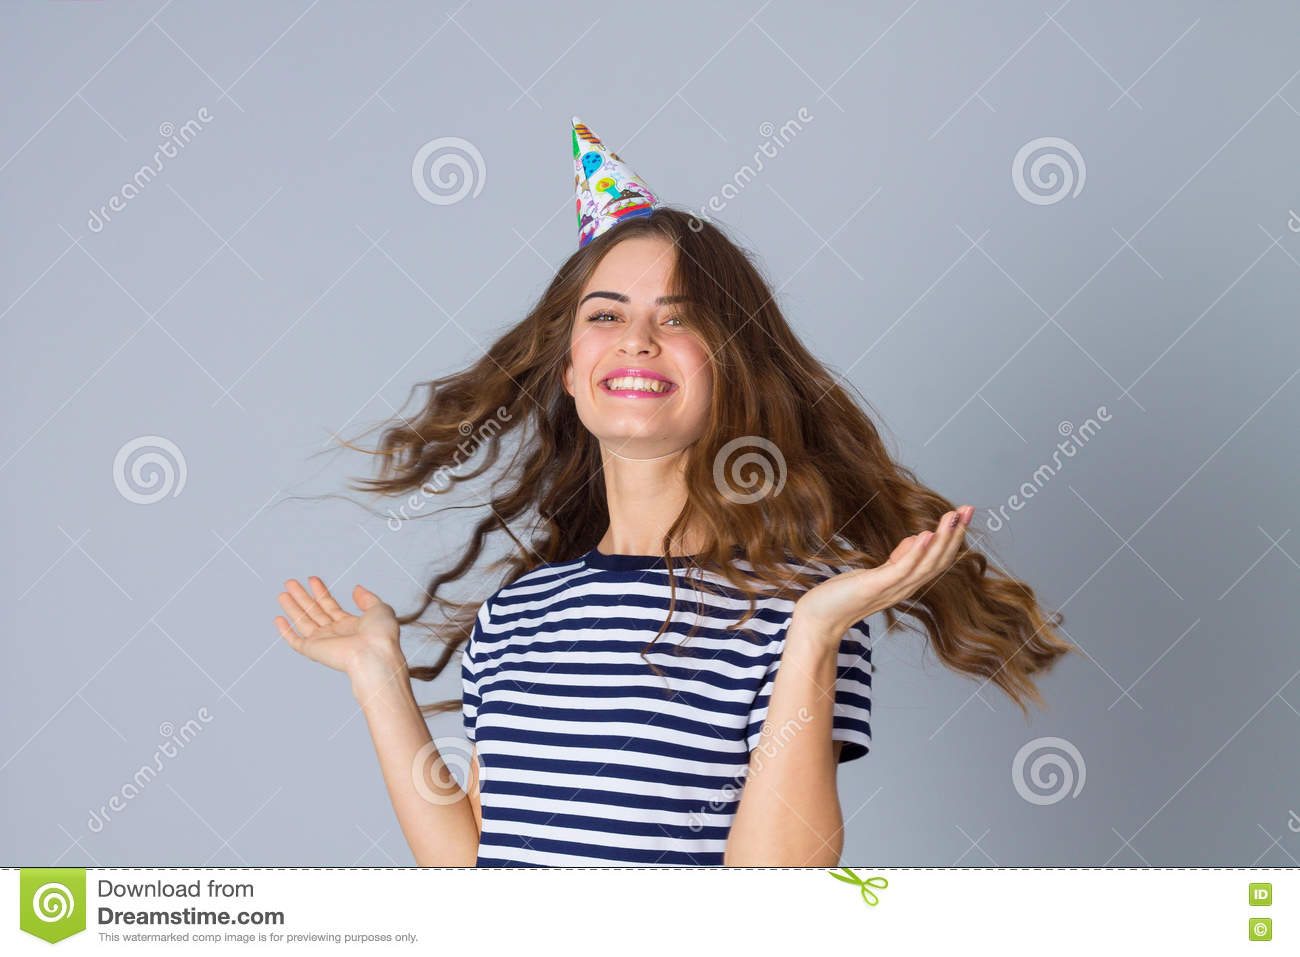 Woman in celebration cap whirling